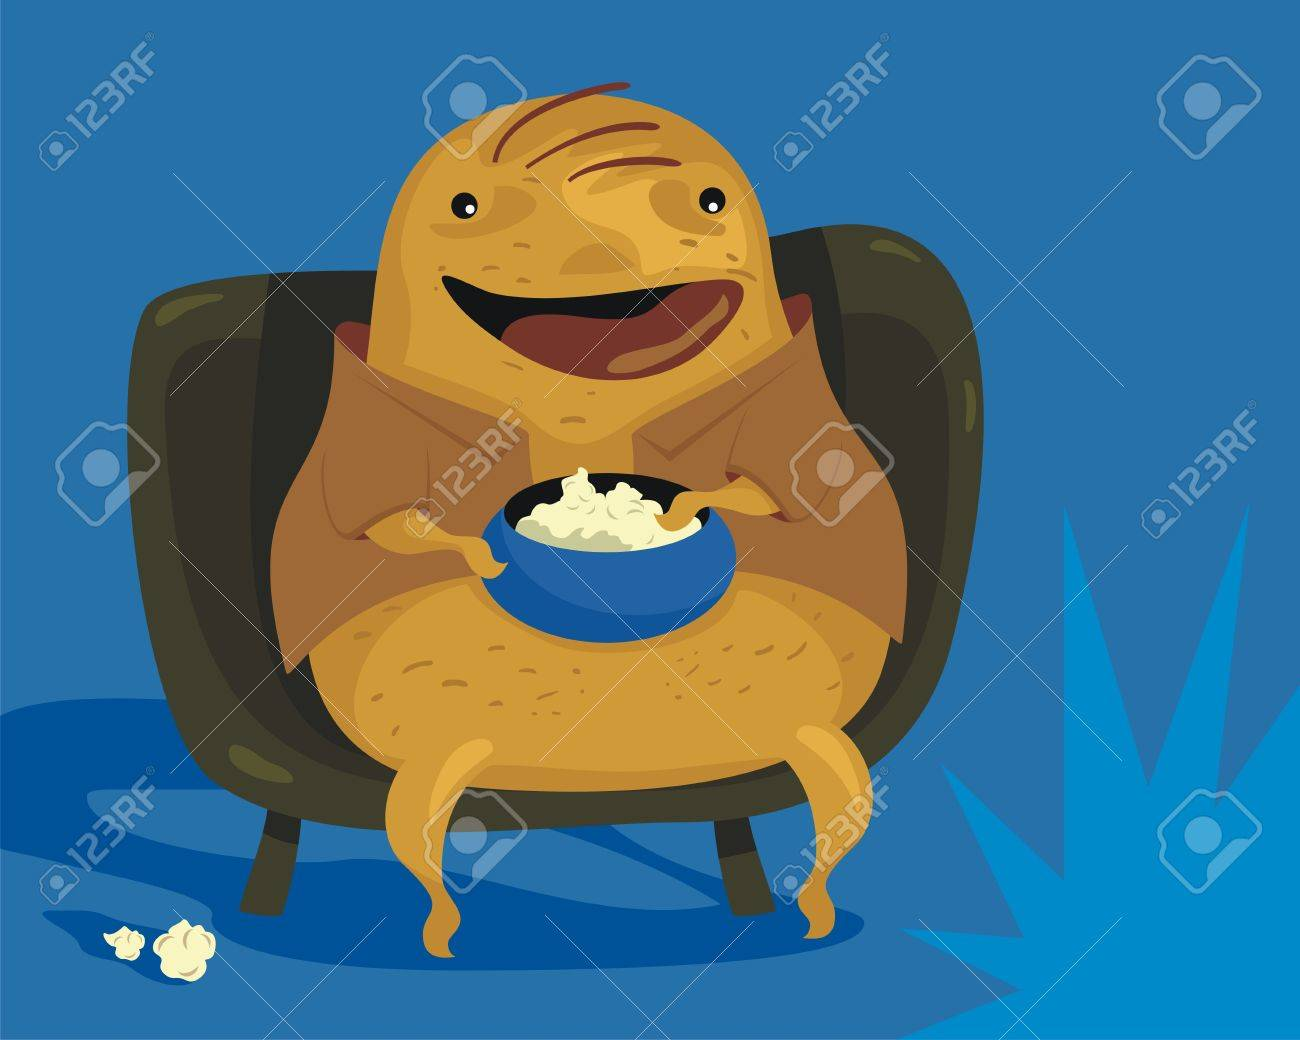 Obese Couch Potato Happy couch potato cartoon